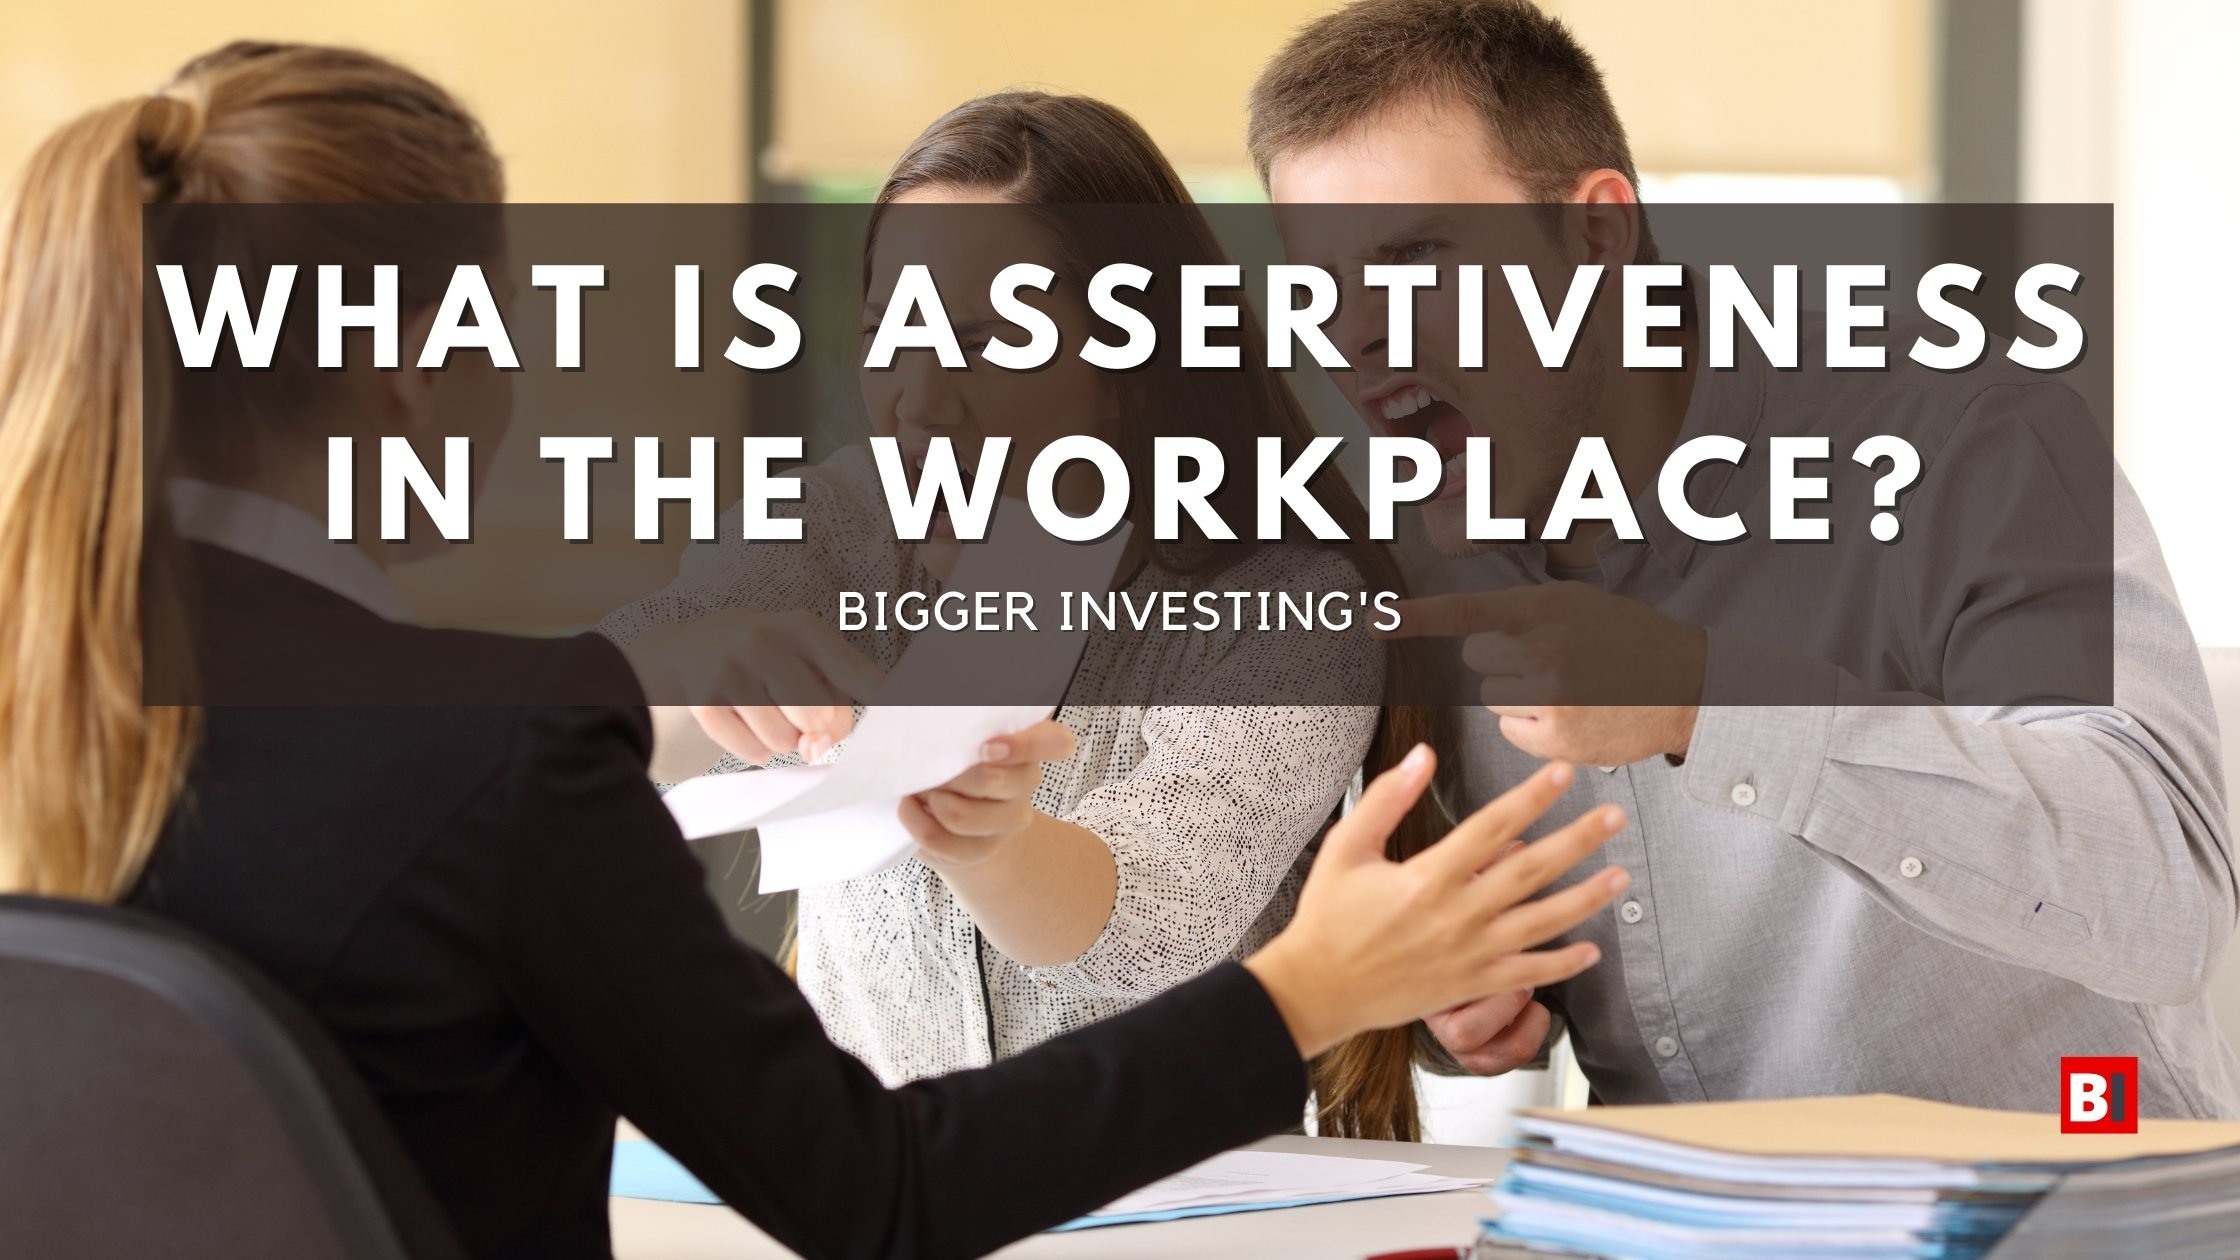 What is Assertiveness in the workplace?